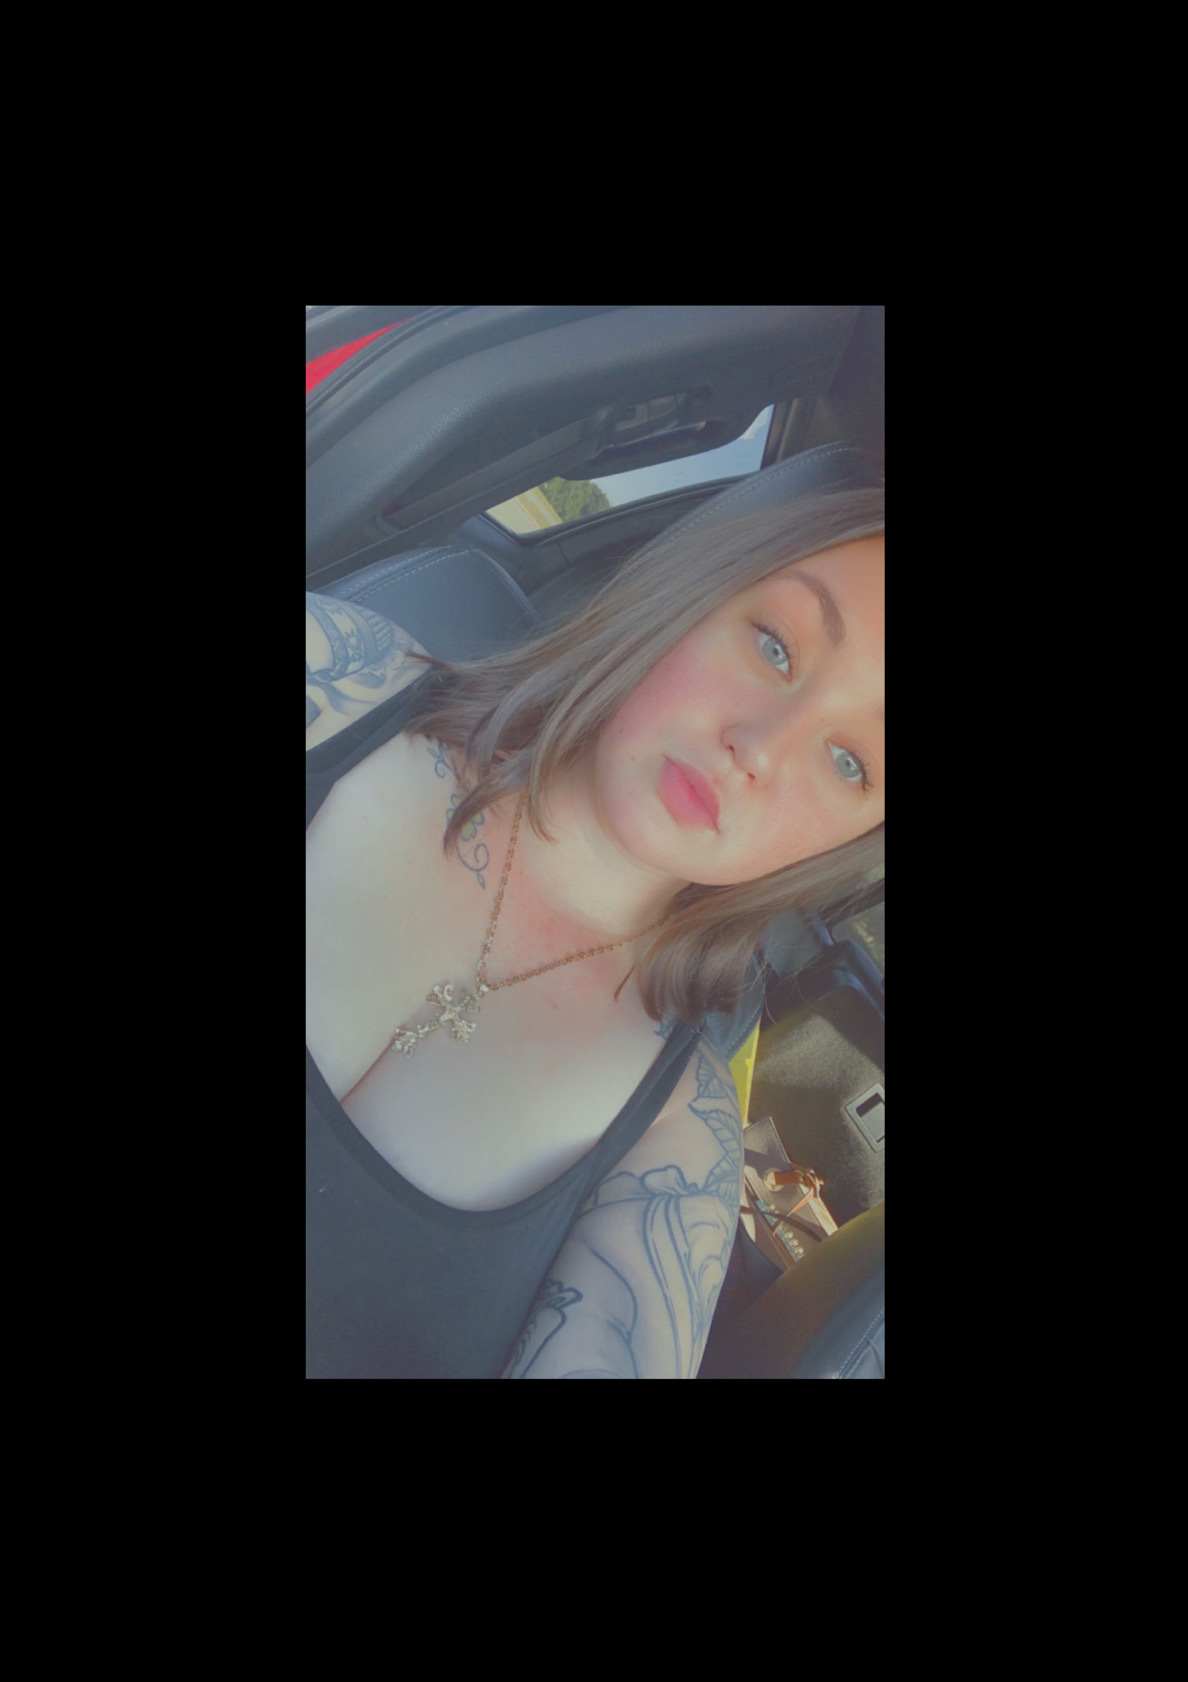 23-year-old, Single From: Lithia, FL, United States